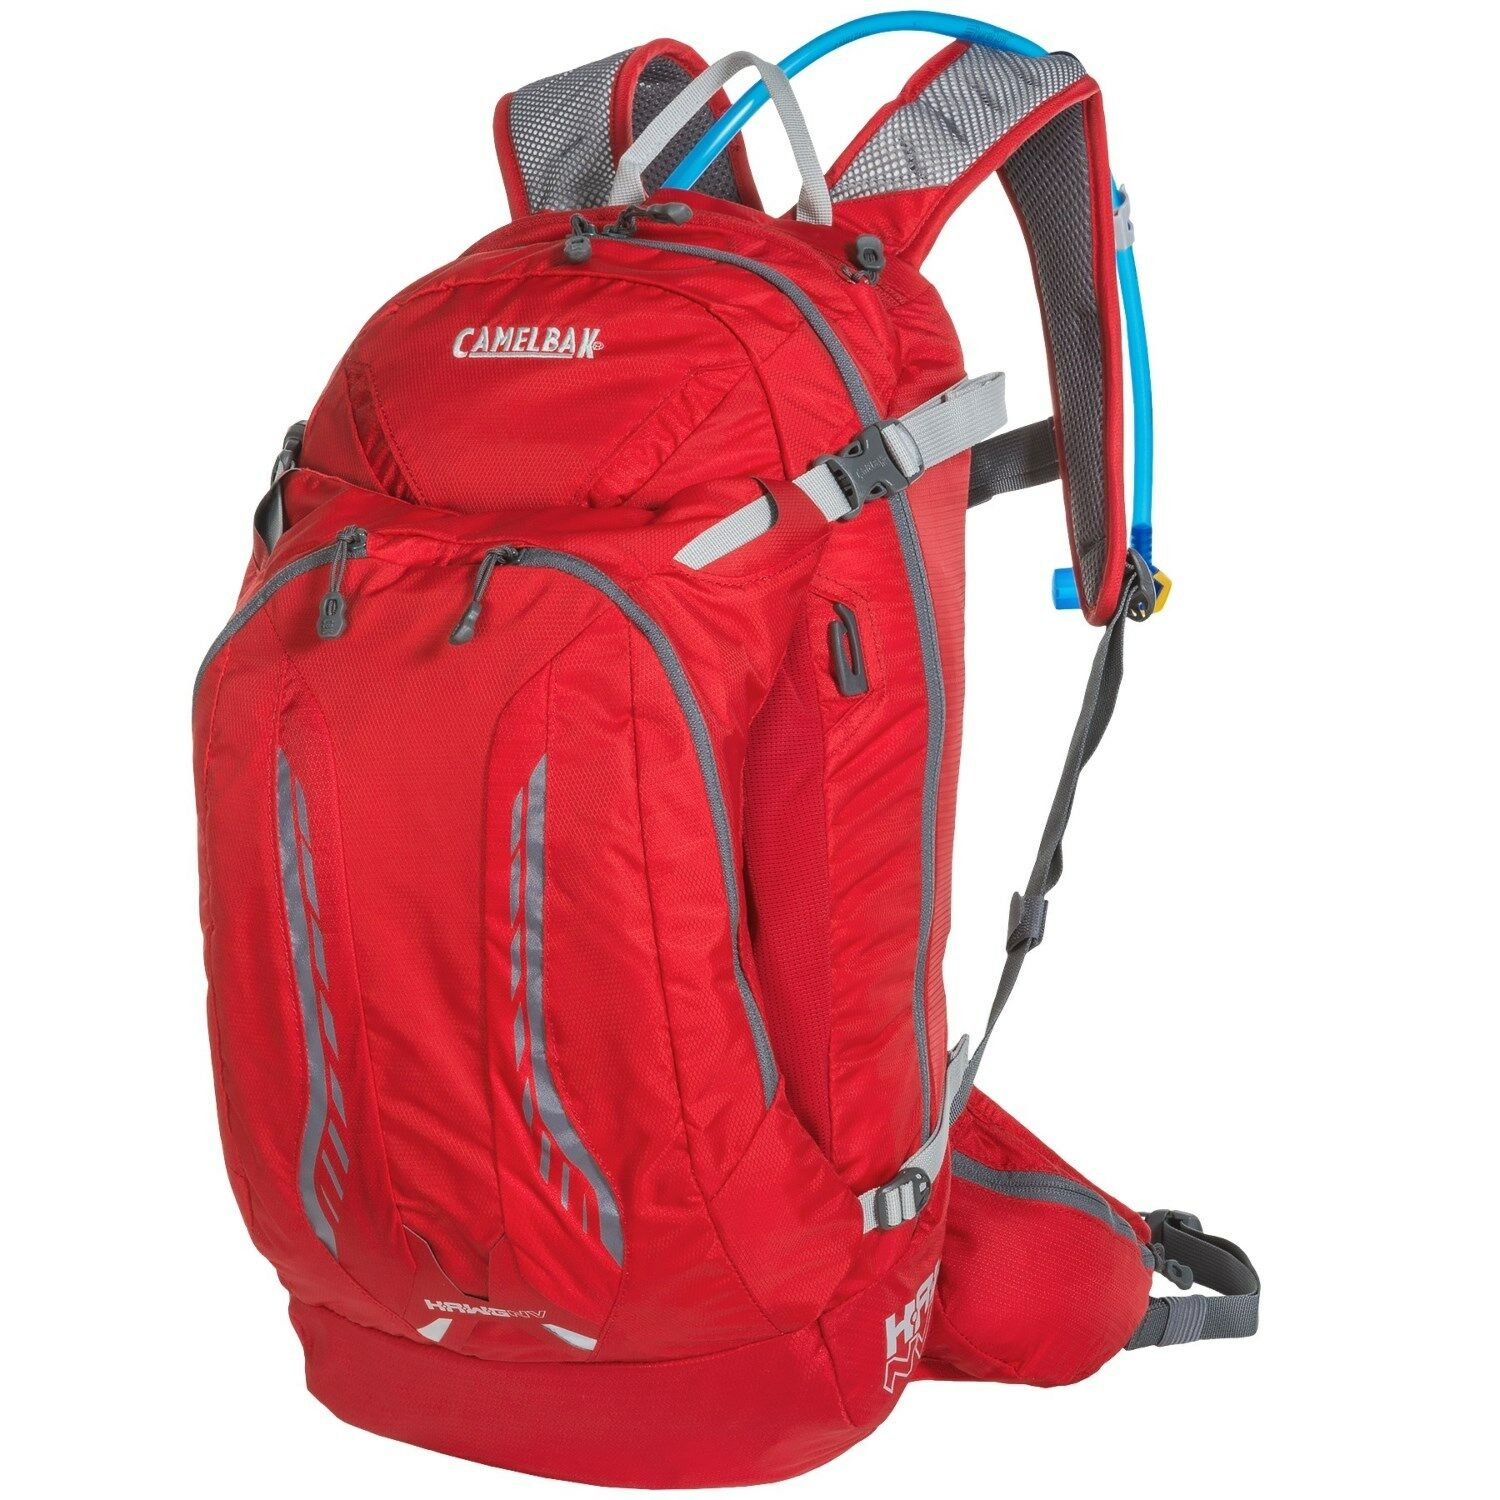 Camelbak H.A.W.G Hawg NV 17L 17L 17L 100 Hydration Pack Backpack Barbads Cherry Graphite 70636b